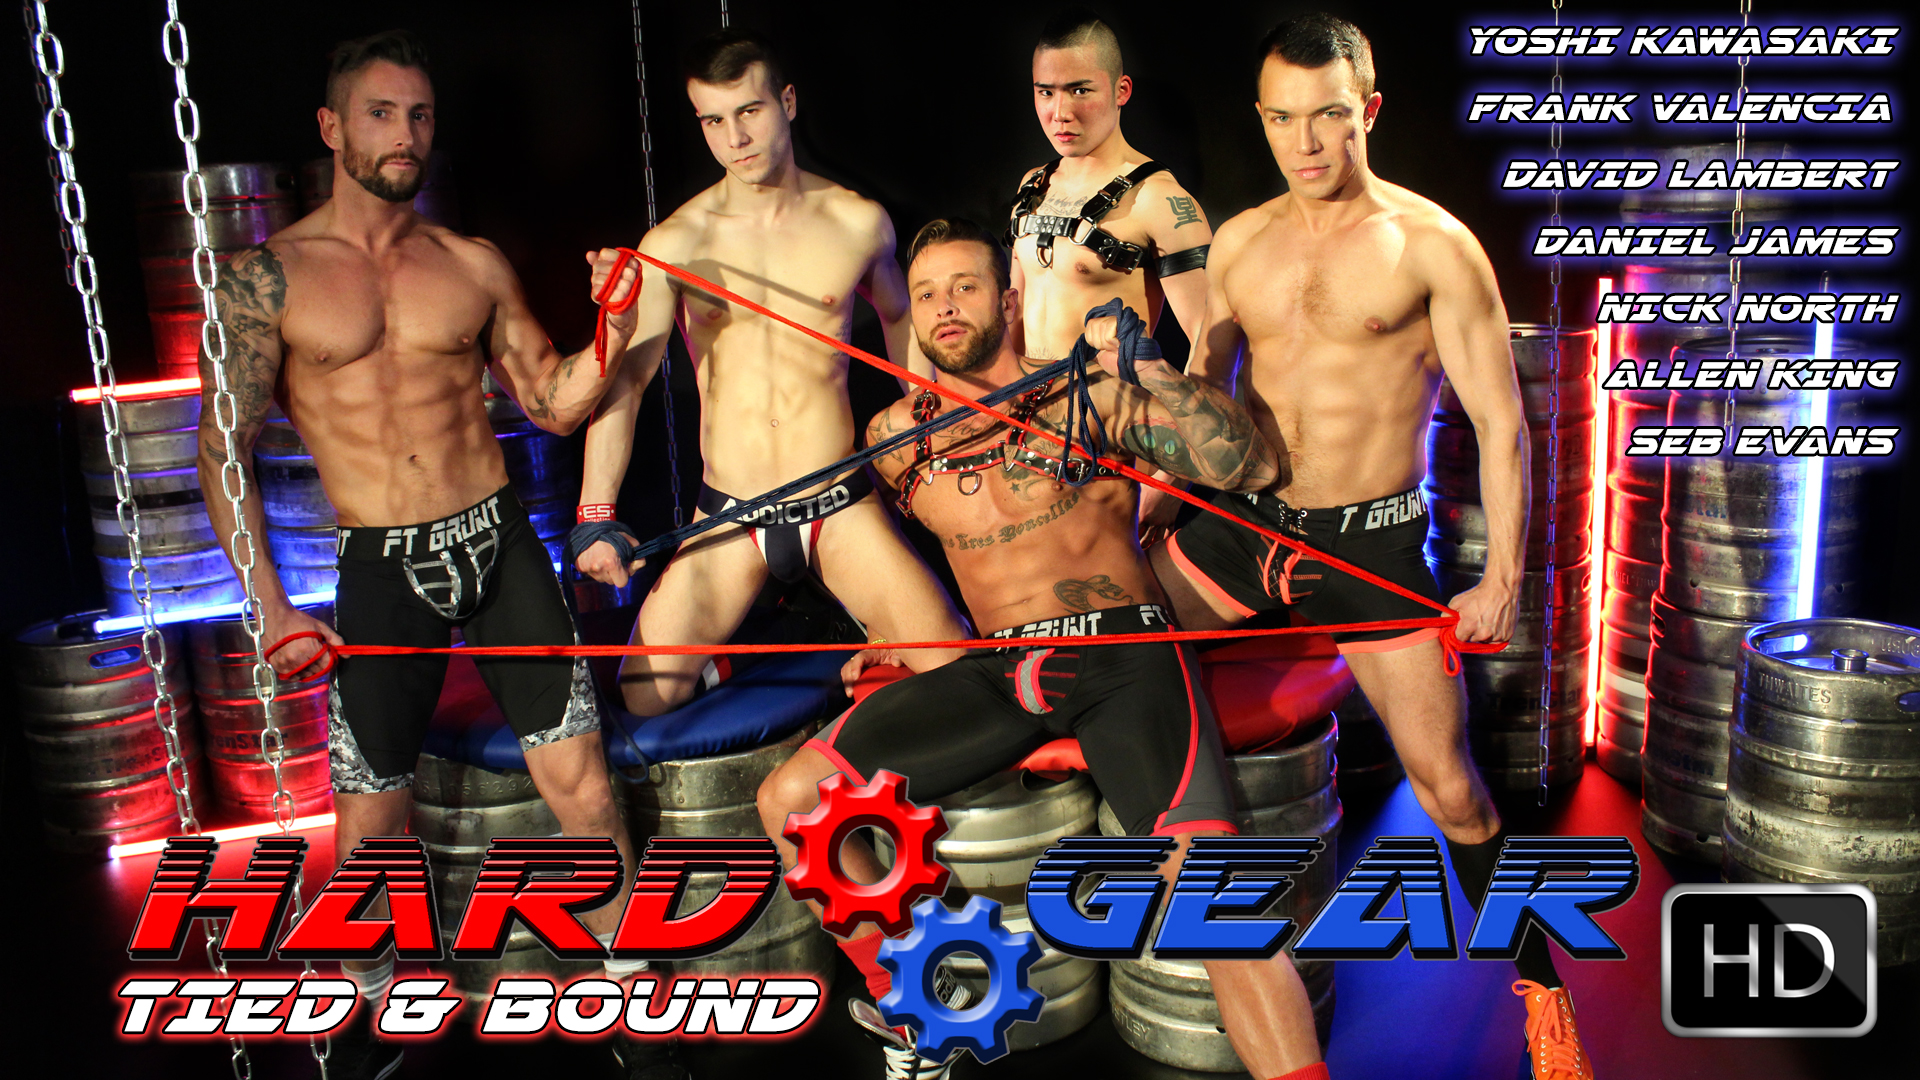 HARDGEAR | Tied & Bound